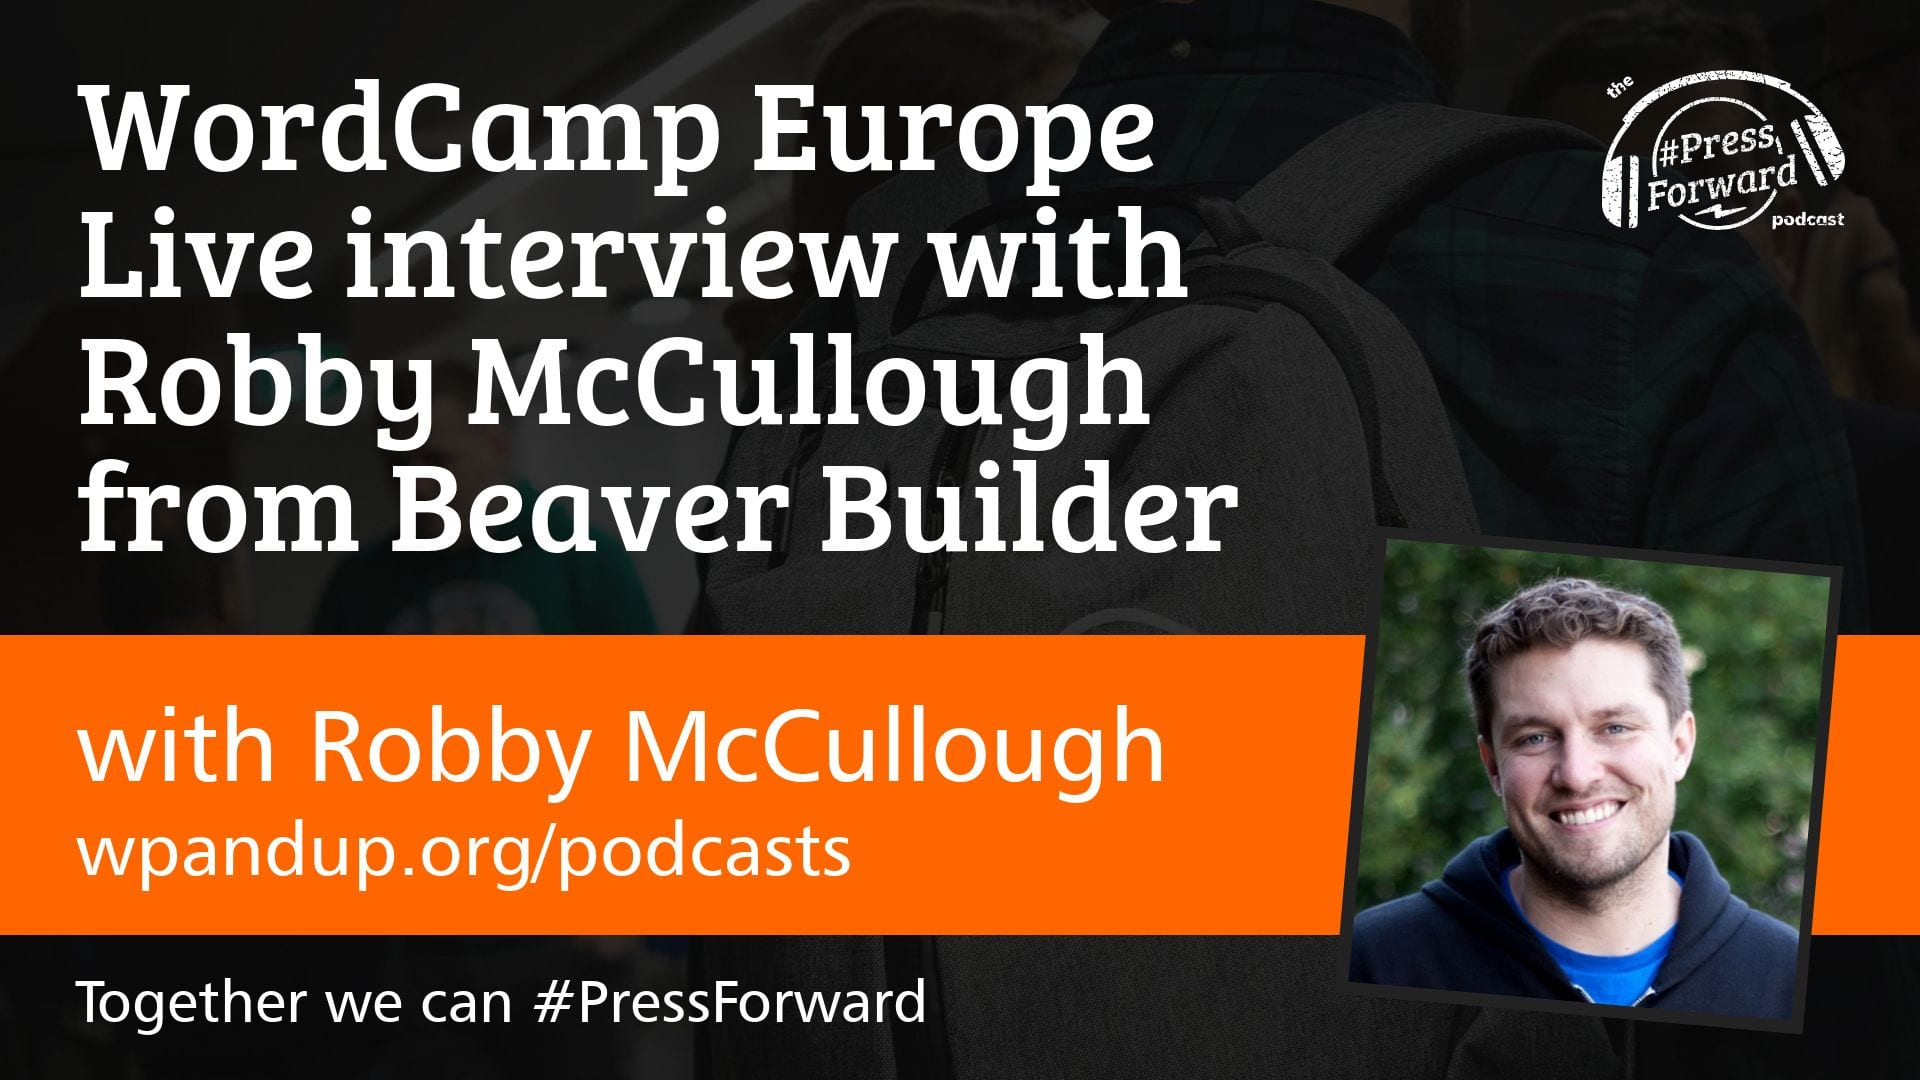 WordCamp Europe Live interview with Robby McCullough from Beaver Builder - #012